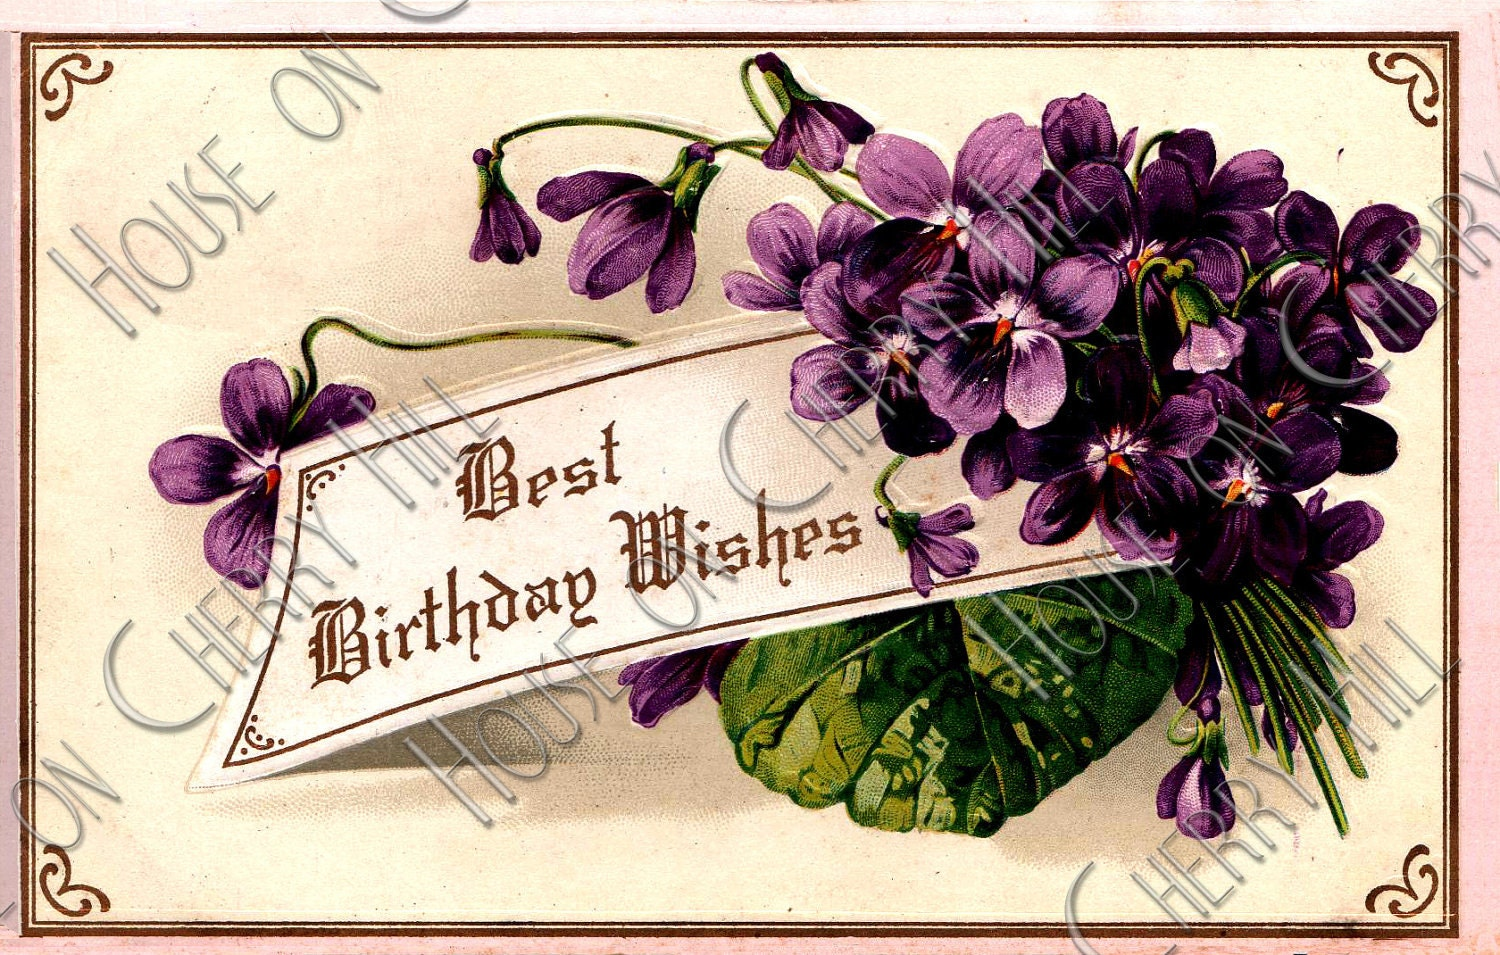 Spring of Violets Digital Postcard - Best wishes - romantic - purple - flower - remember - modest - sweet - Victorian - no.230 - HouseonCherryHill